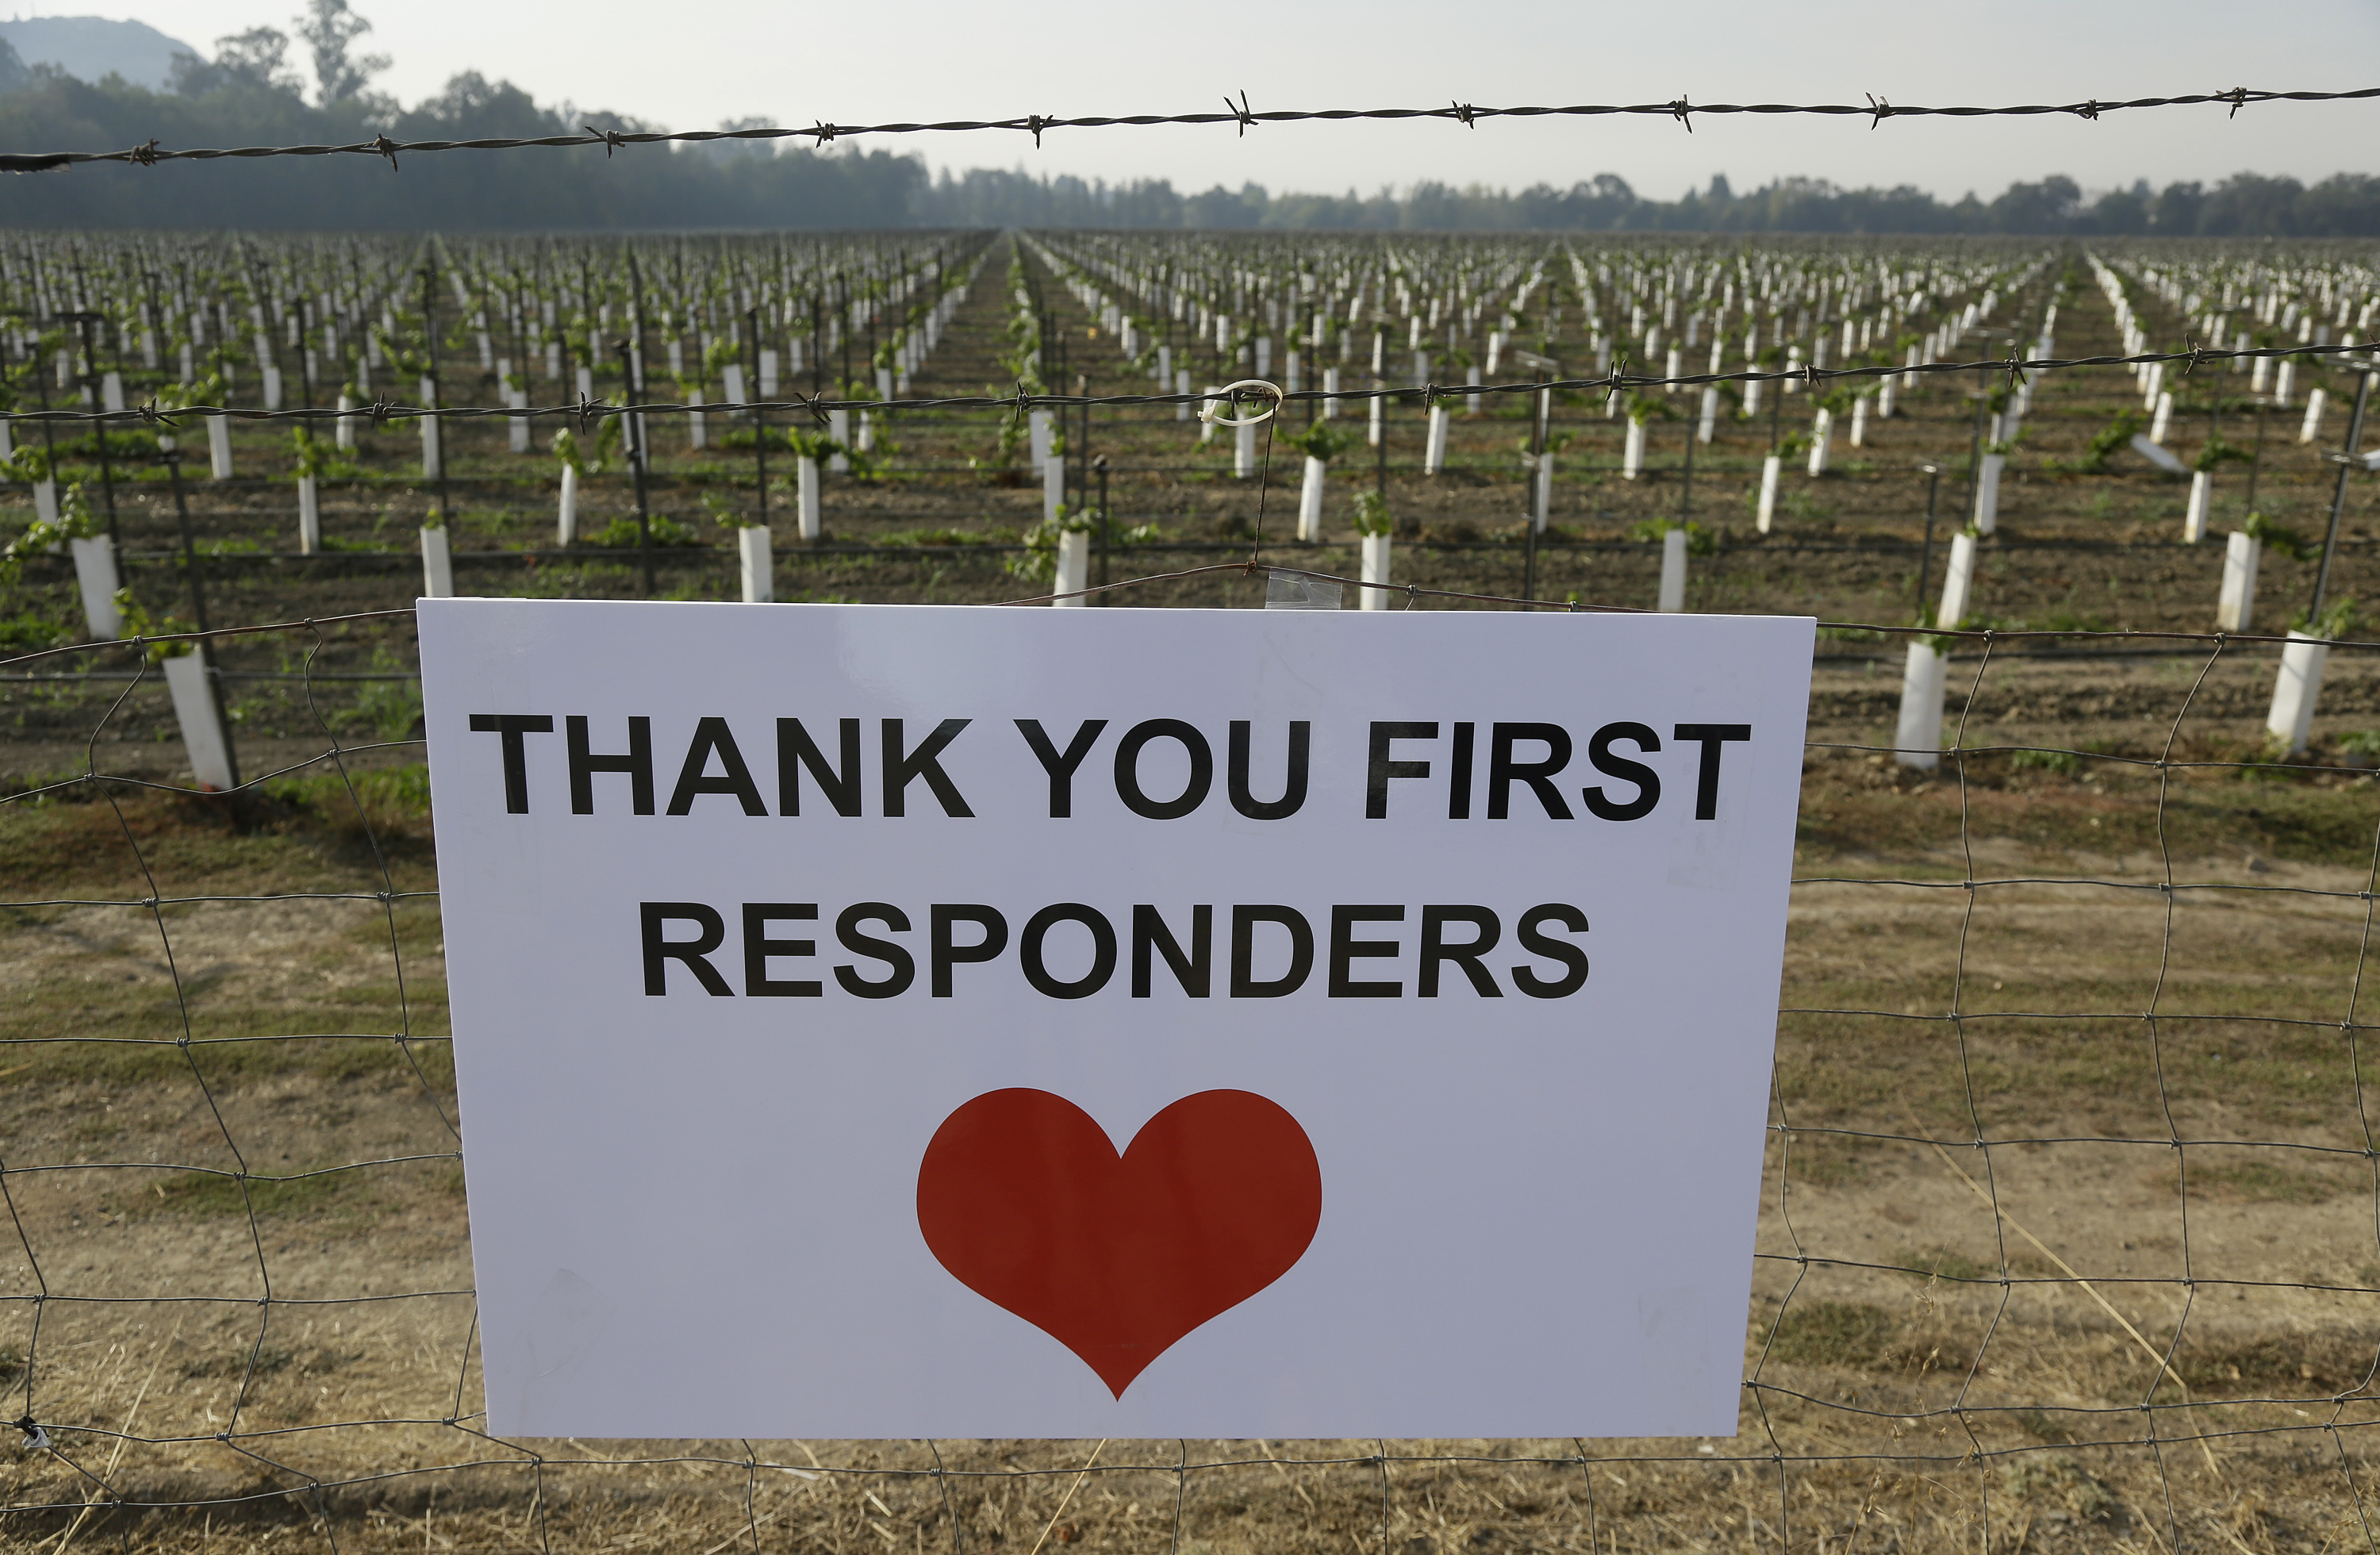 <div class='meta'><div class='origin-logo' data-origin='none'></div><span class='caption-text' data-credit='Eric Risberg/AP Photo'>A sign thanking first responders hangs by a newly planted vineyard Monday, Oct. 16, 2017, in Napa, Calif.</span></div>